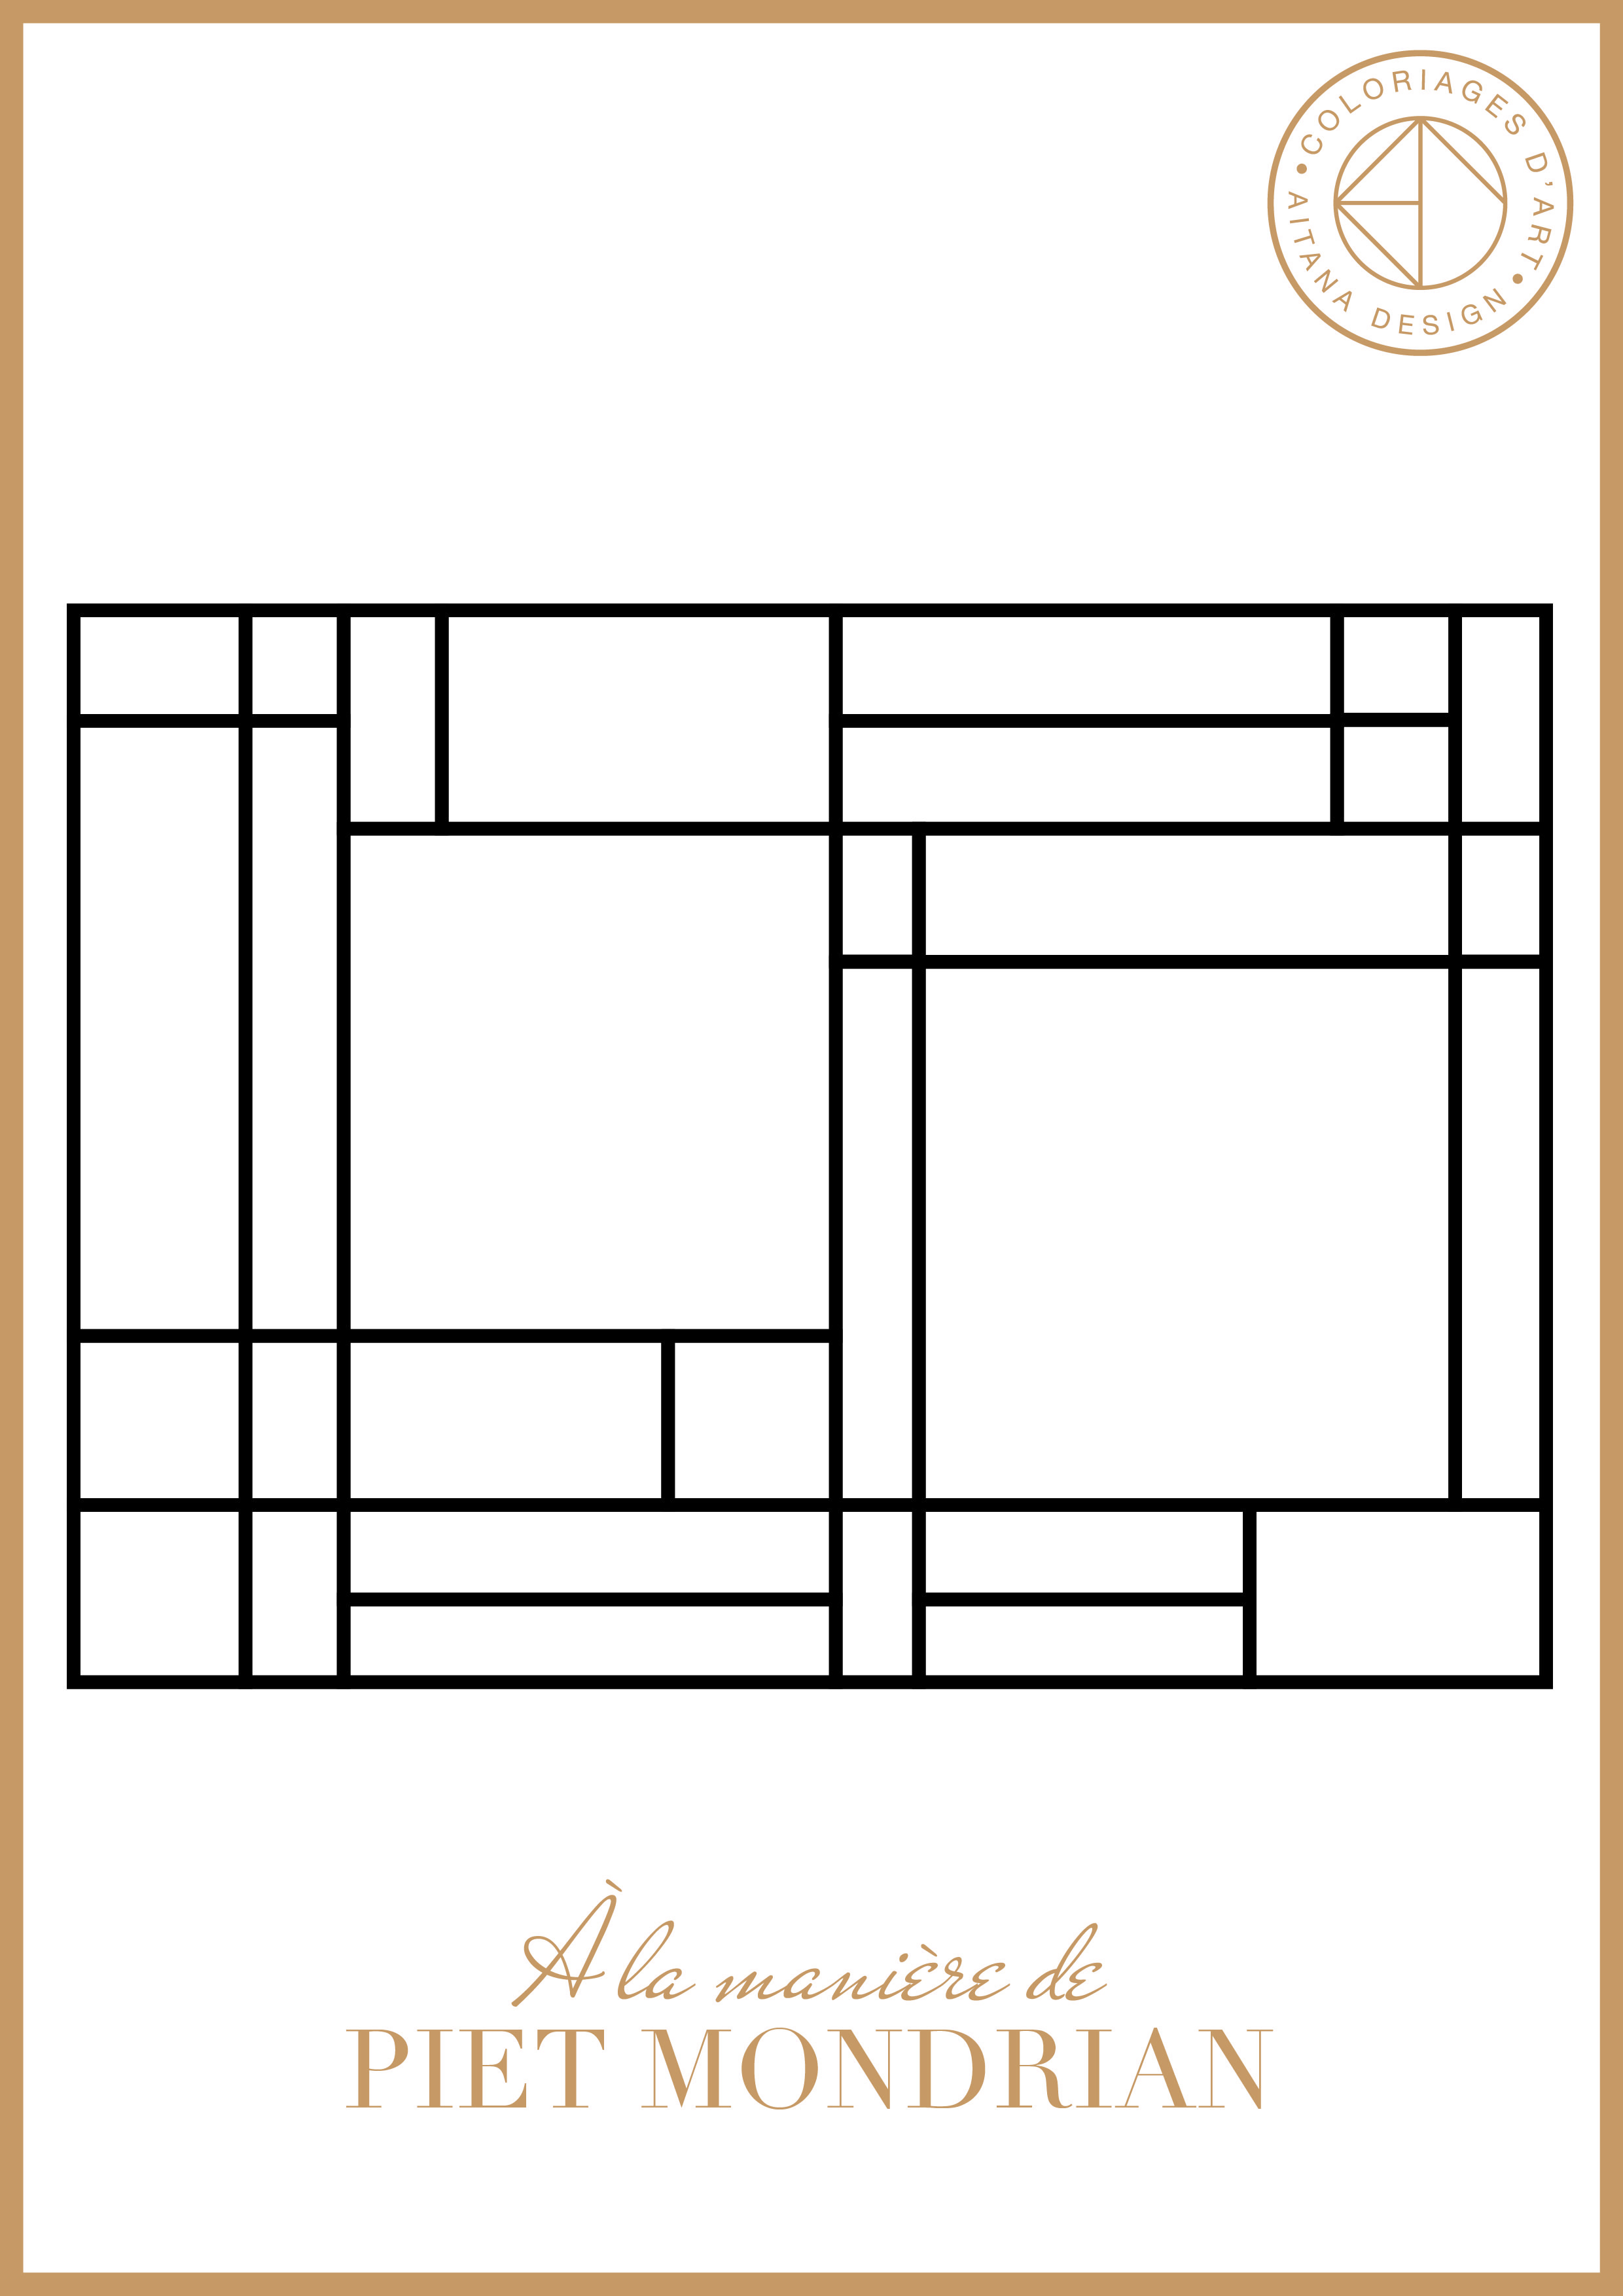 les coloriages histoire de l 39 art a tana design a la mani re de mondrian pinterest. Black Bedroom Furniture Sets. Home Design Ideas